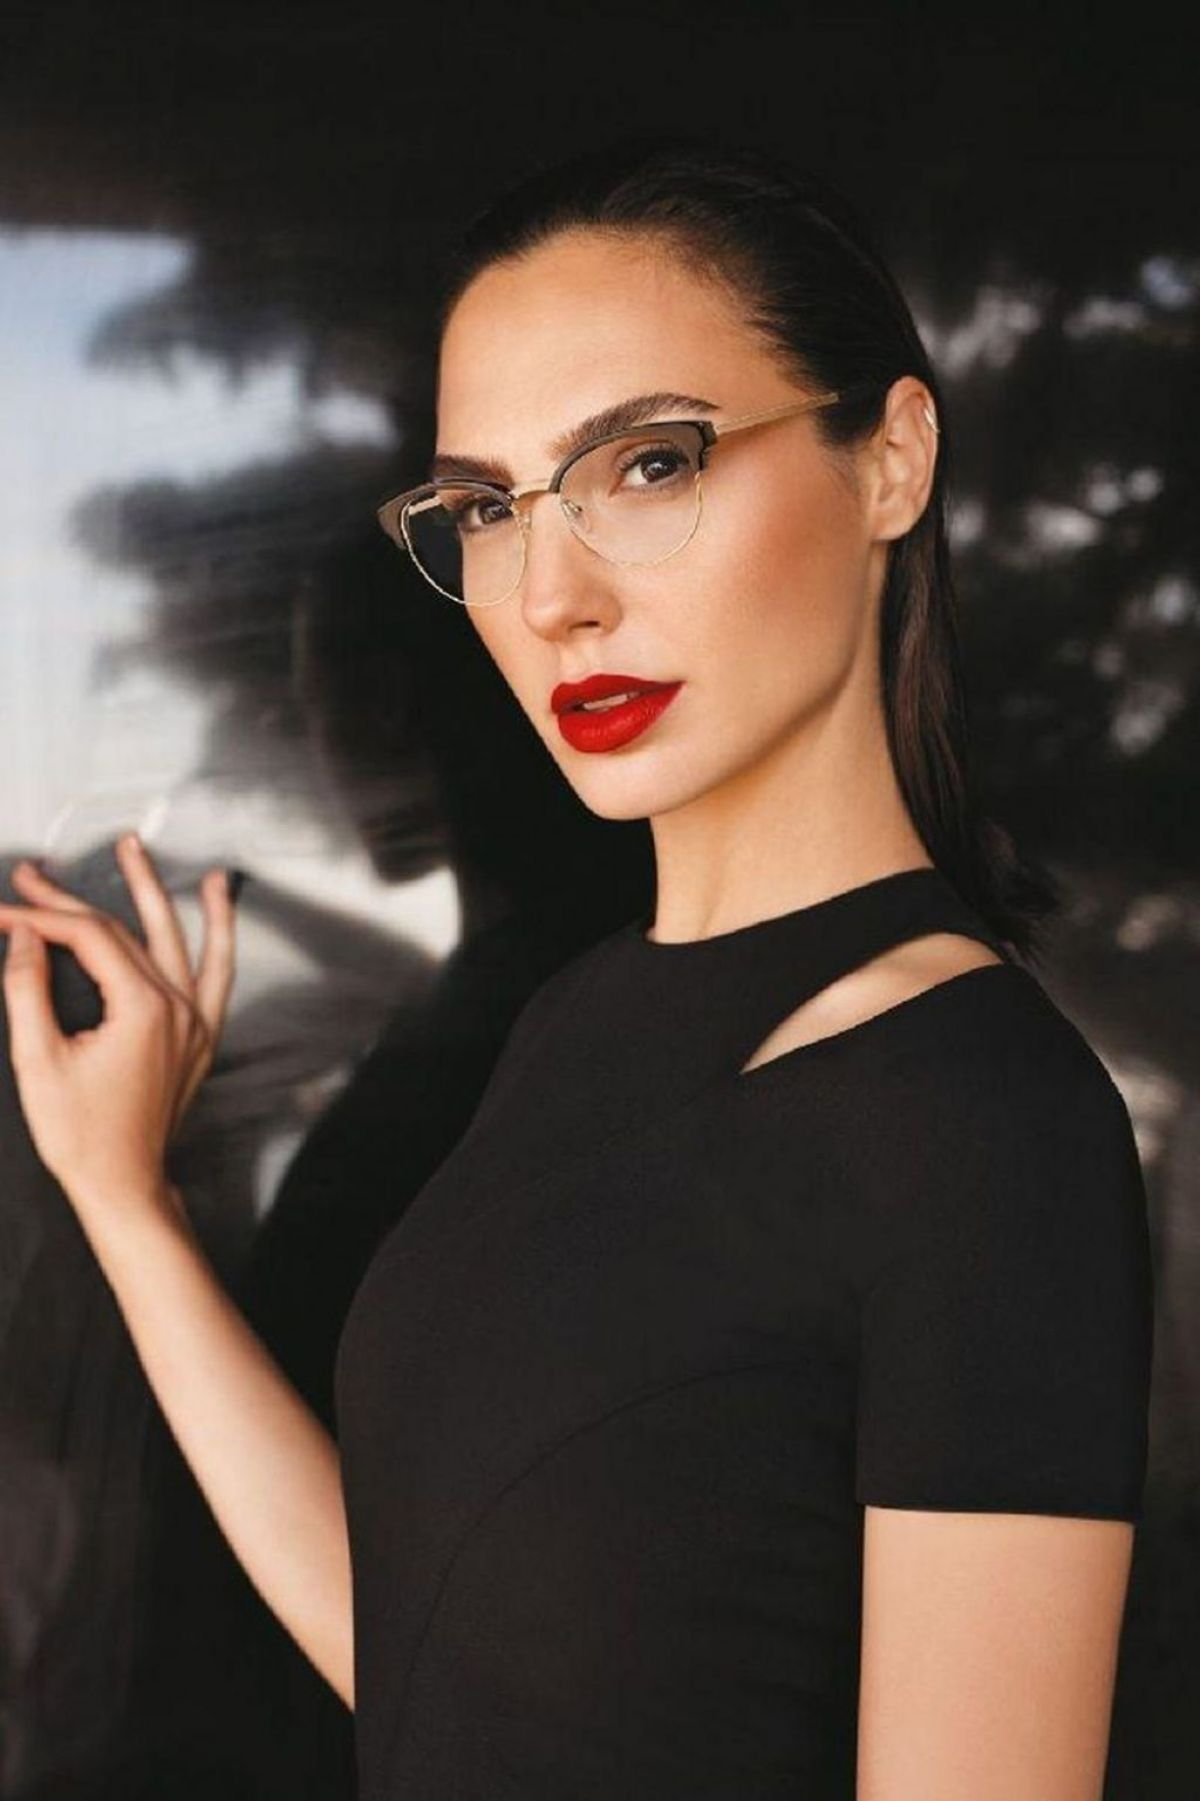 gal gadot - photo #2